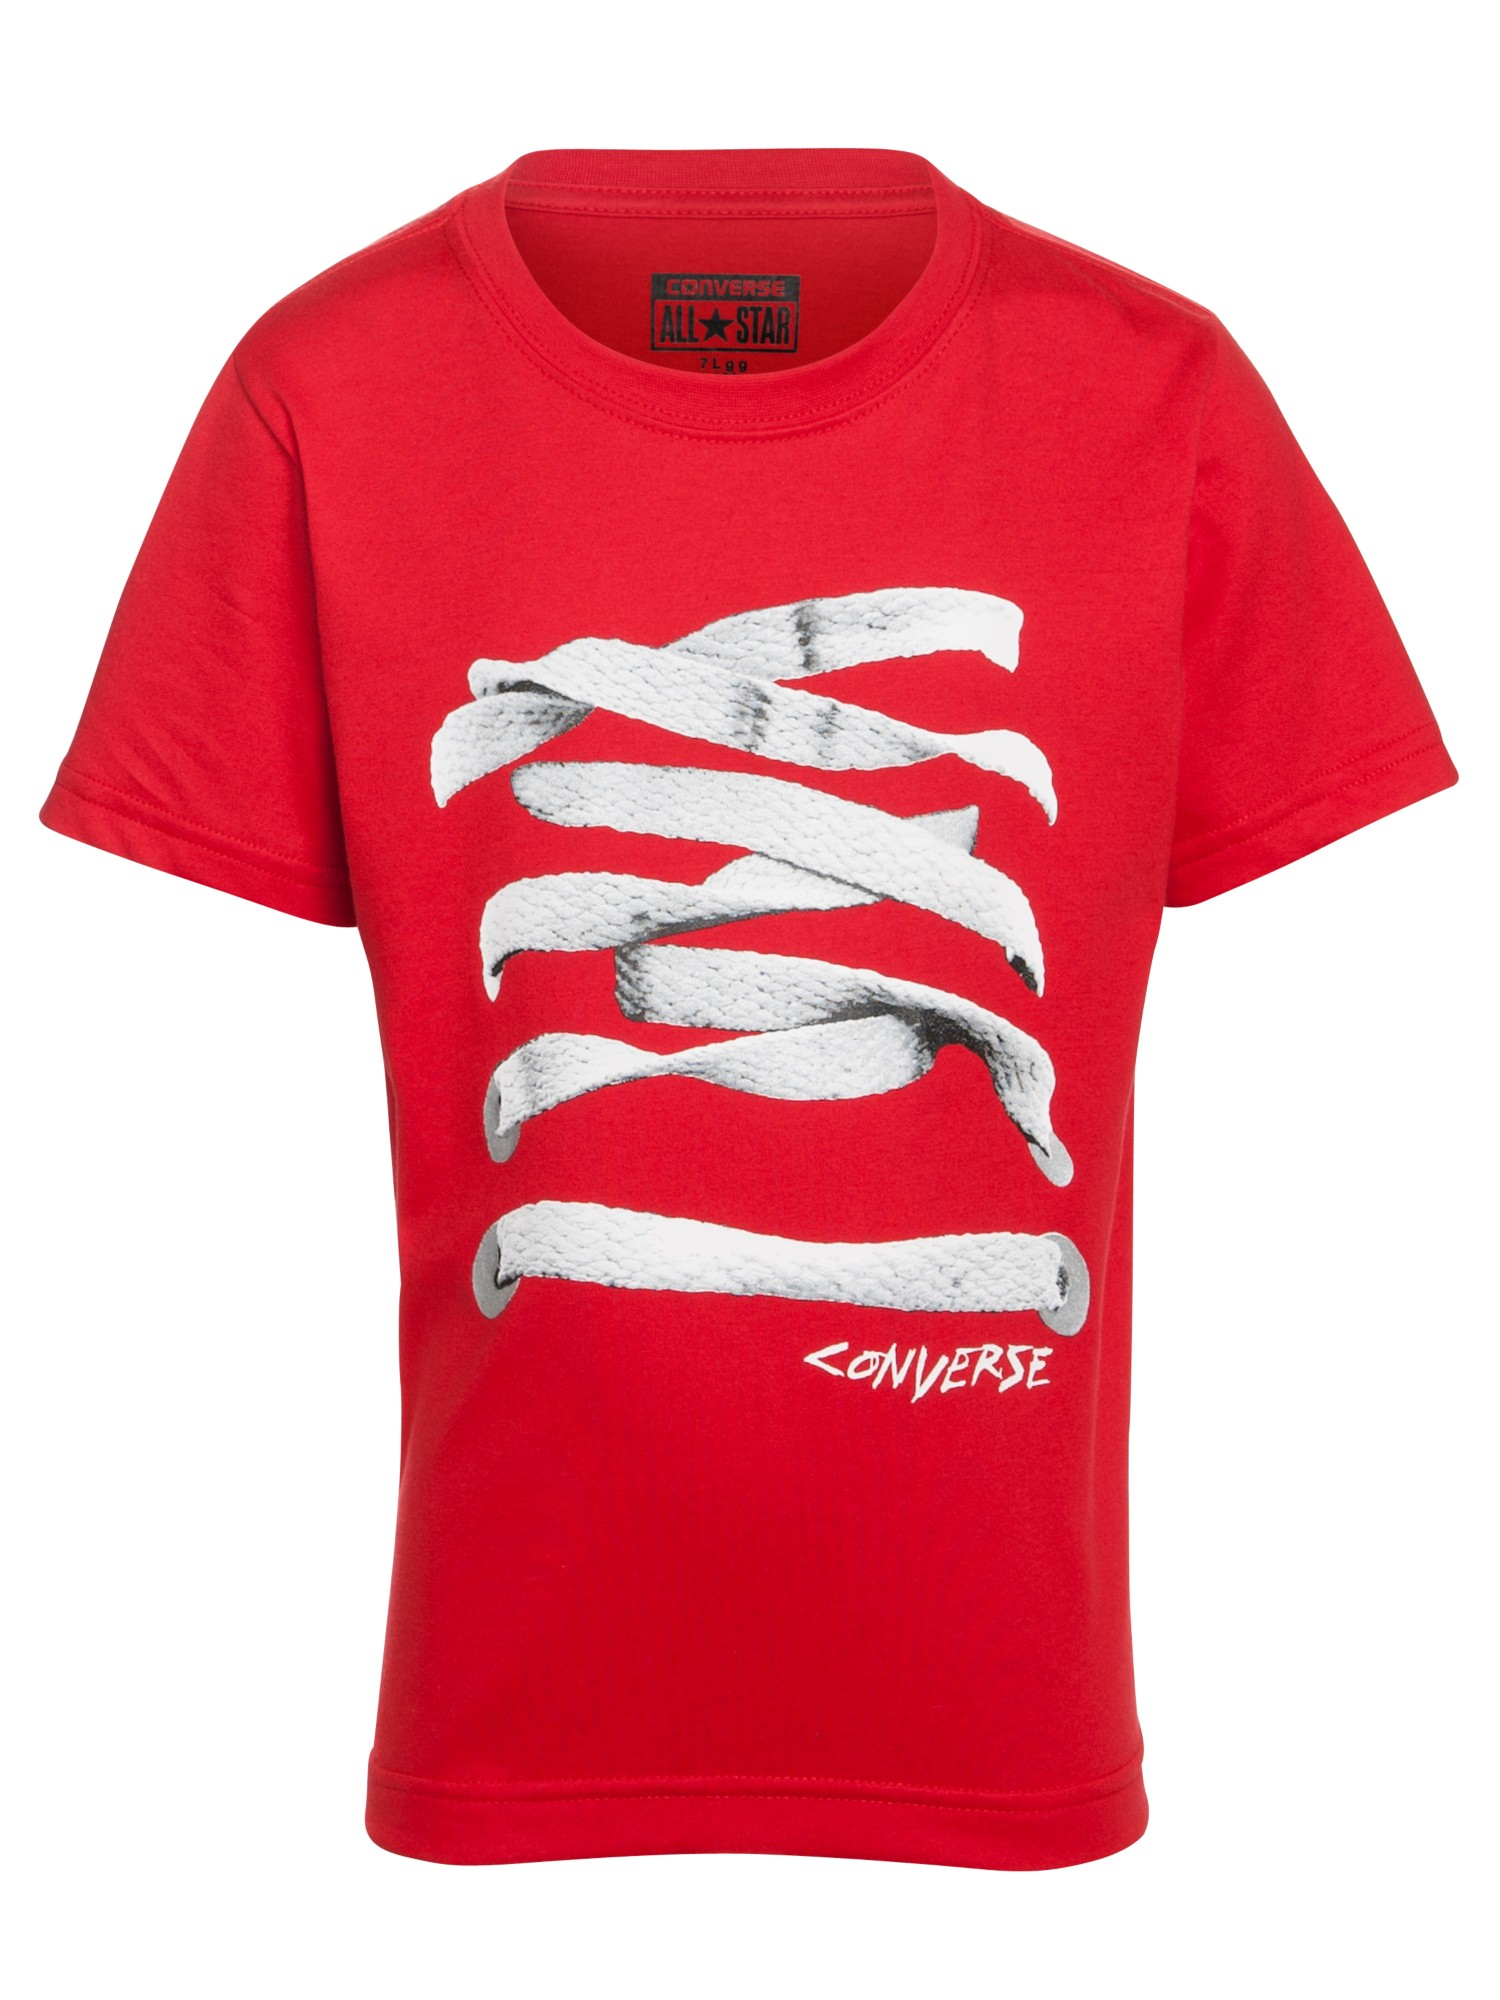 eee271cc9ca1 Converse Boys Shoe Lace Print Tshirt in Red for Men - Lyst